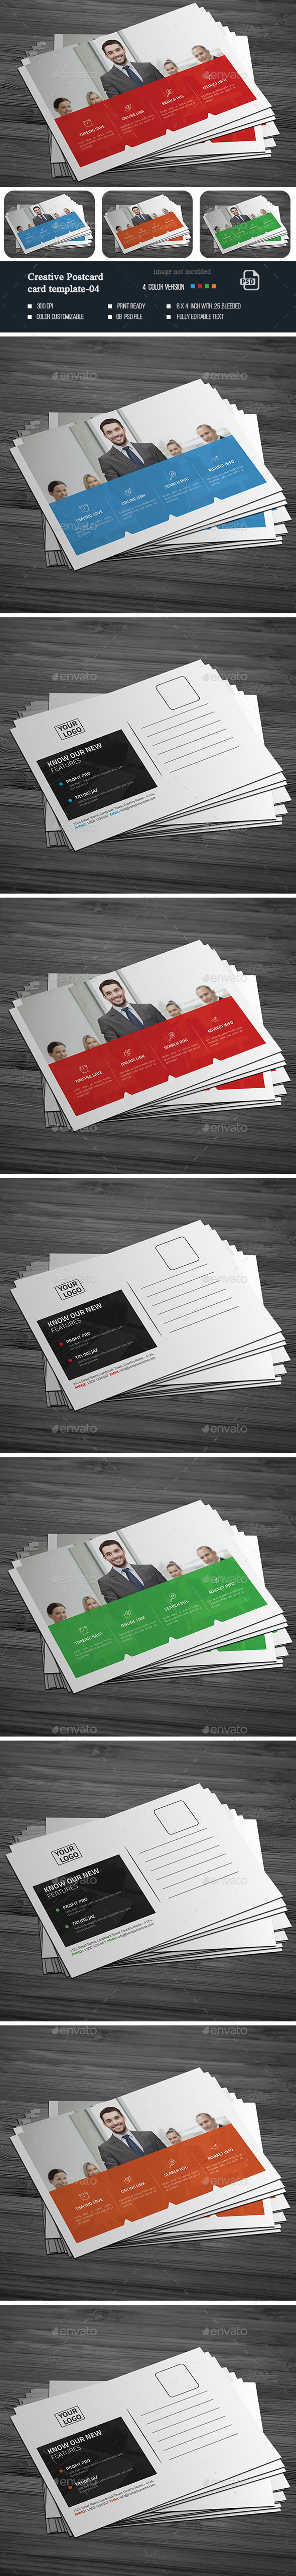 Creative Post Card -04 - Cards & Invites Print Templates